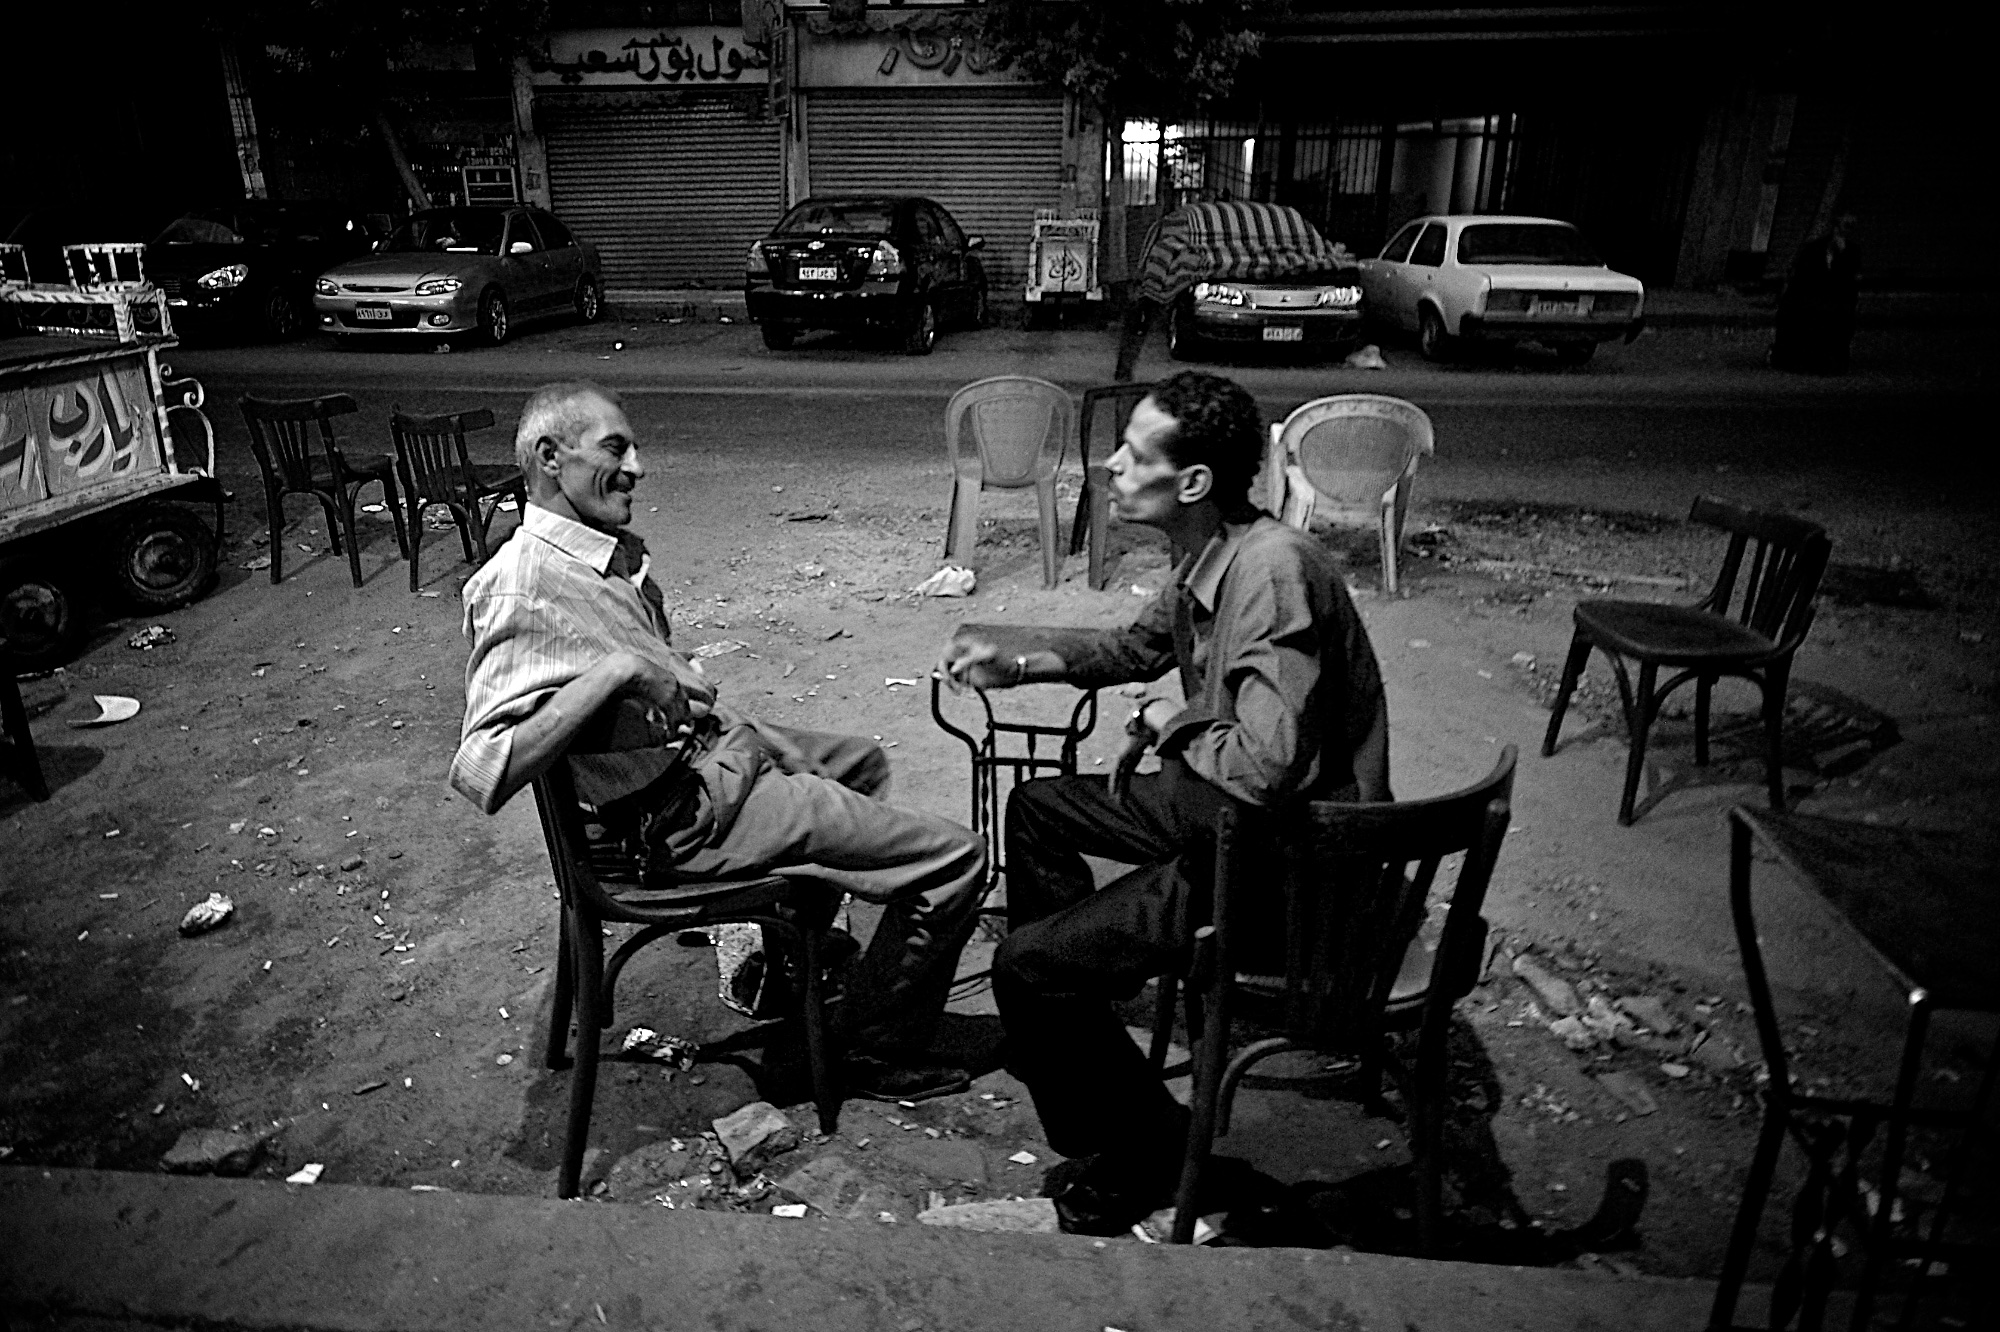 denis-bosnic-cairo-egypt-bw-photography-5-men-ahwa-talking-cigarette-trash.jpg